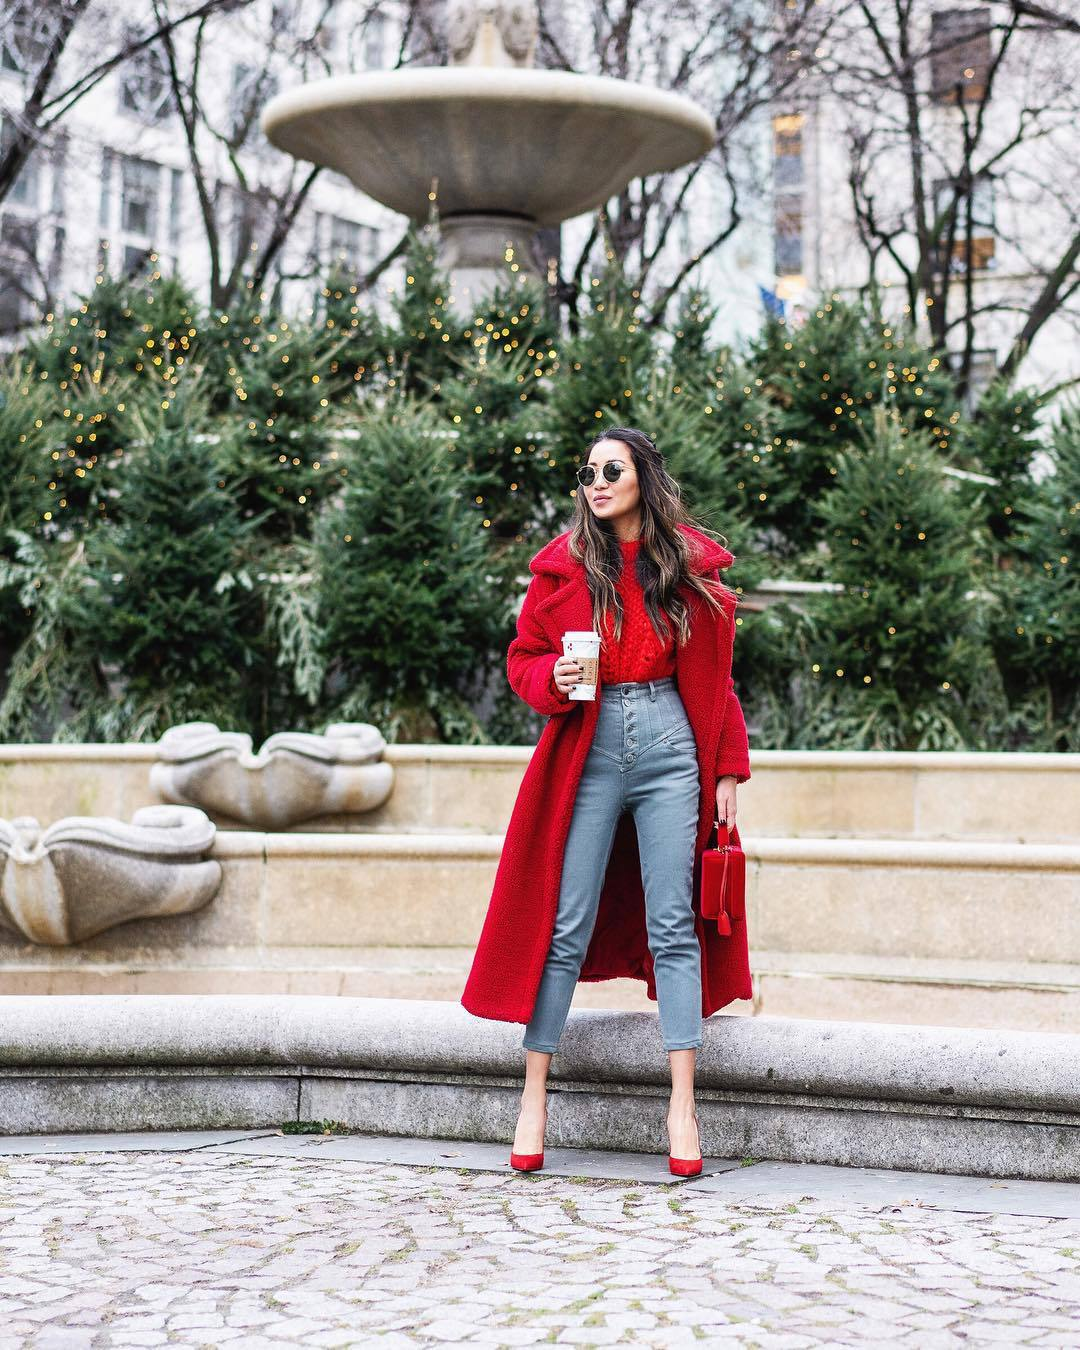 jeans high waisted jeans skinny jeans pumps red coat teddy bear coat oversized coat boxed bag sweater